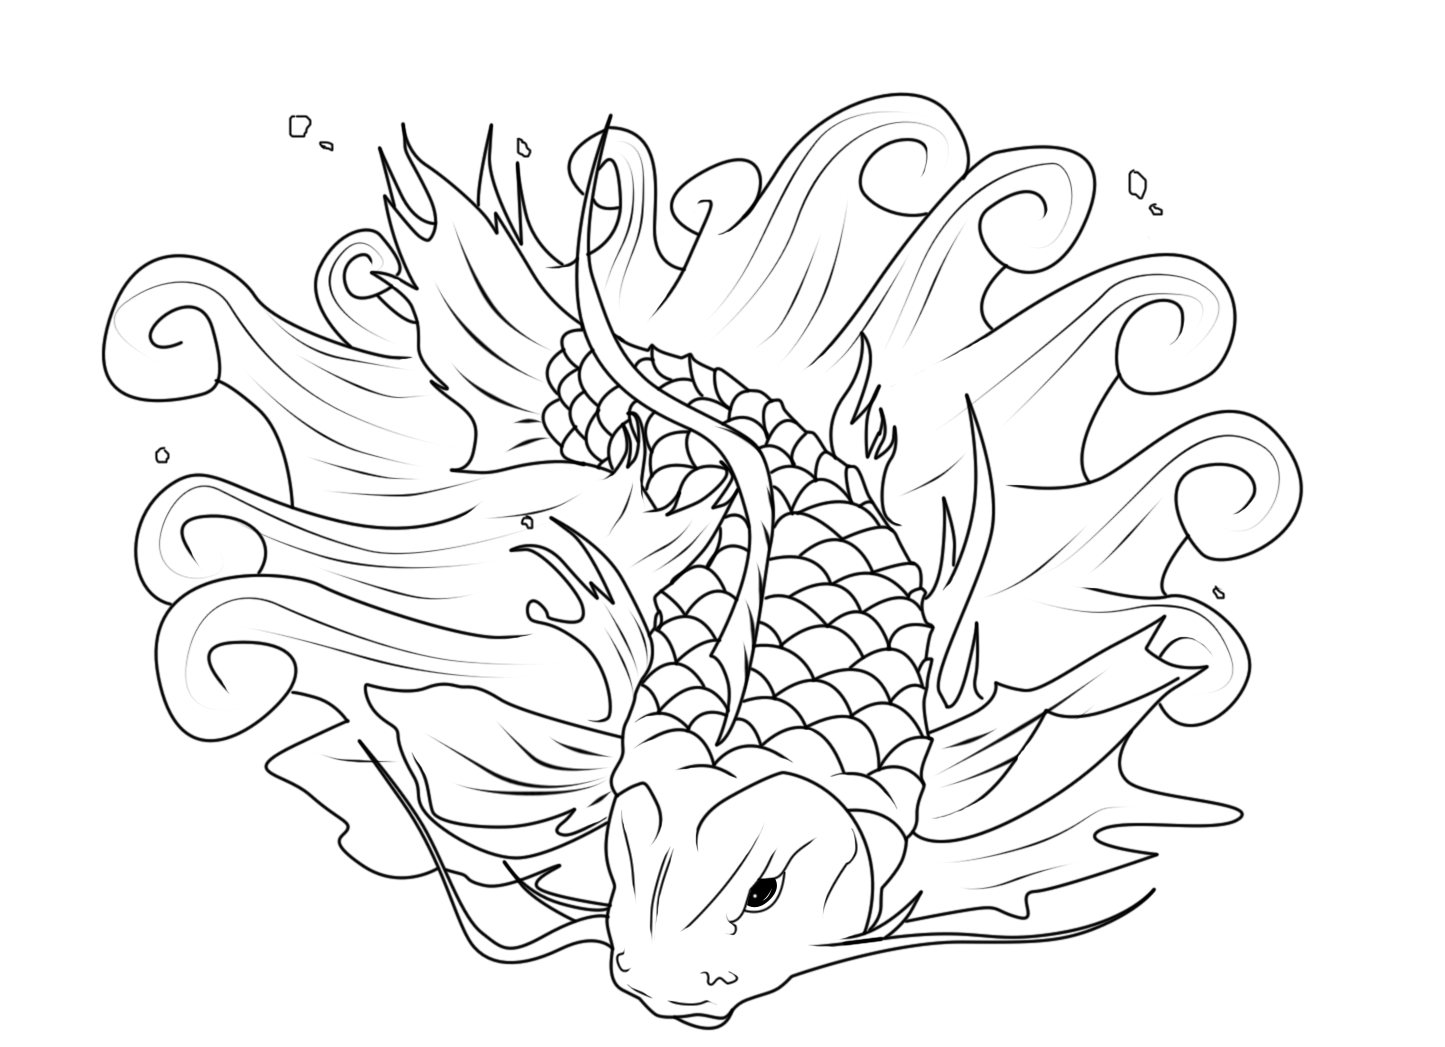 detailed fish coloring pages detailed fish coloring pages coloring home detailed pages fish coloring